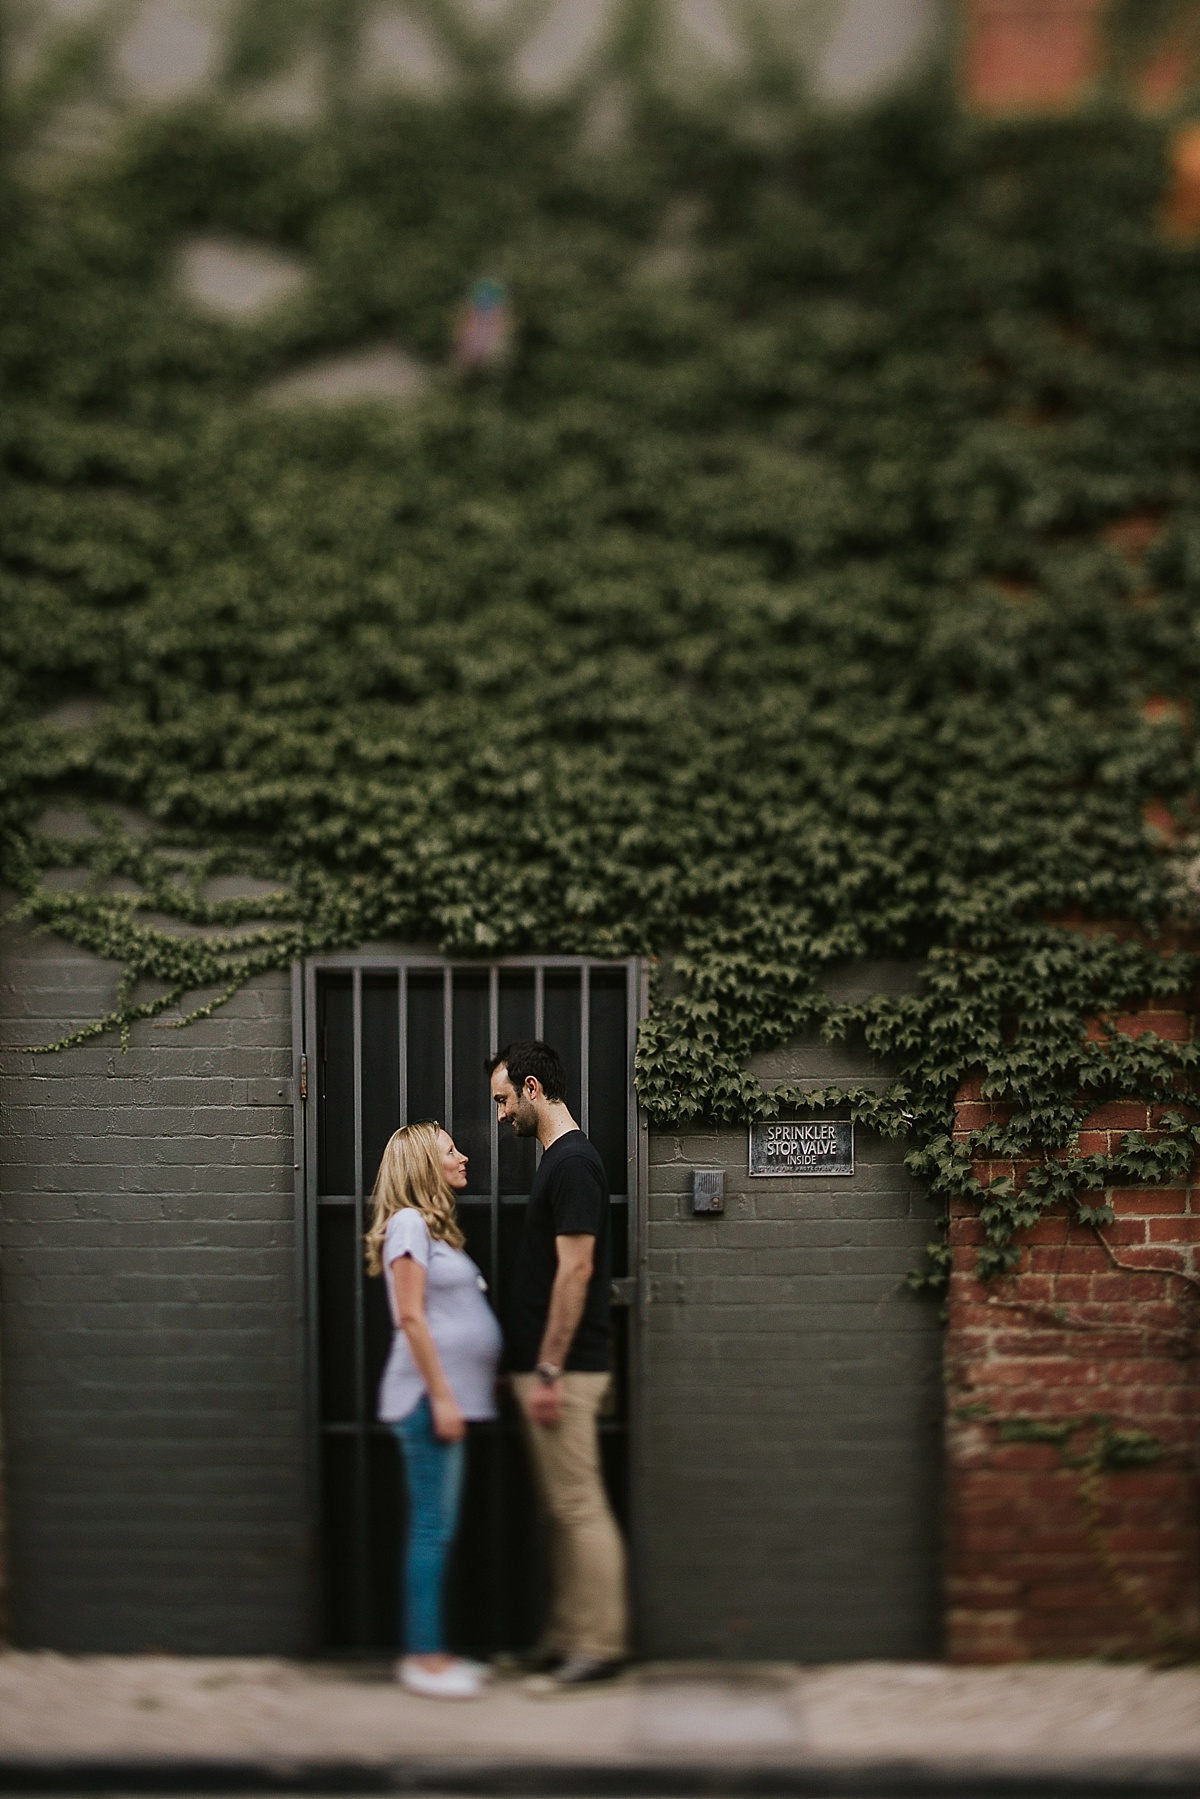 Jacquie&Hayden_Fun-Richmond-Urban-Engagement-Session-Relaxed-Candid_22